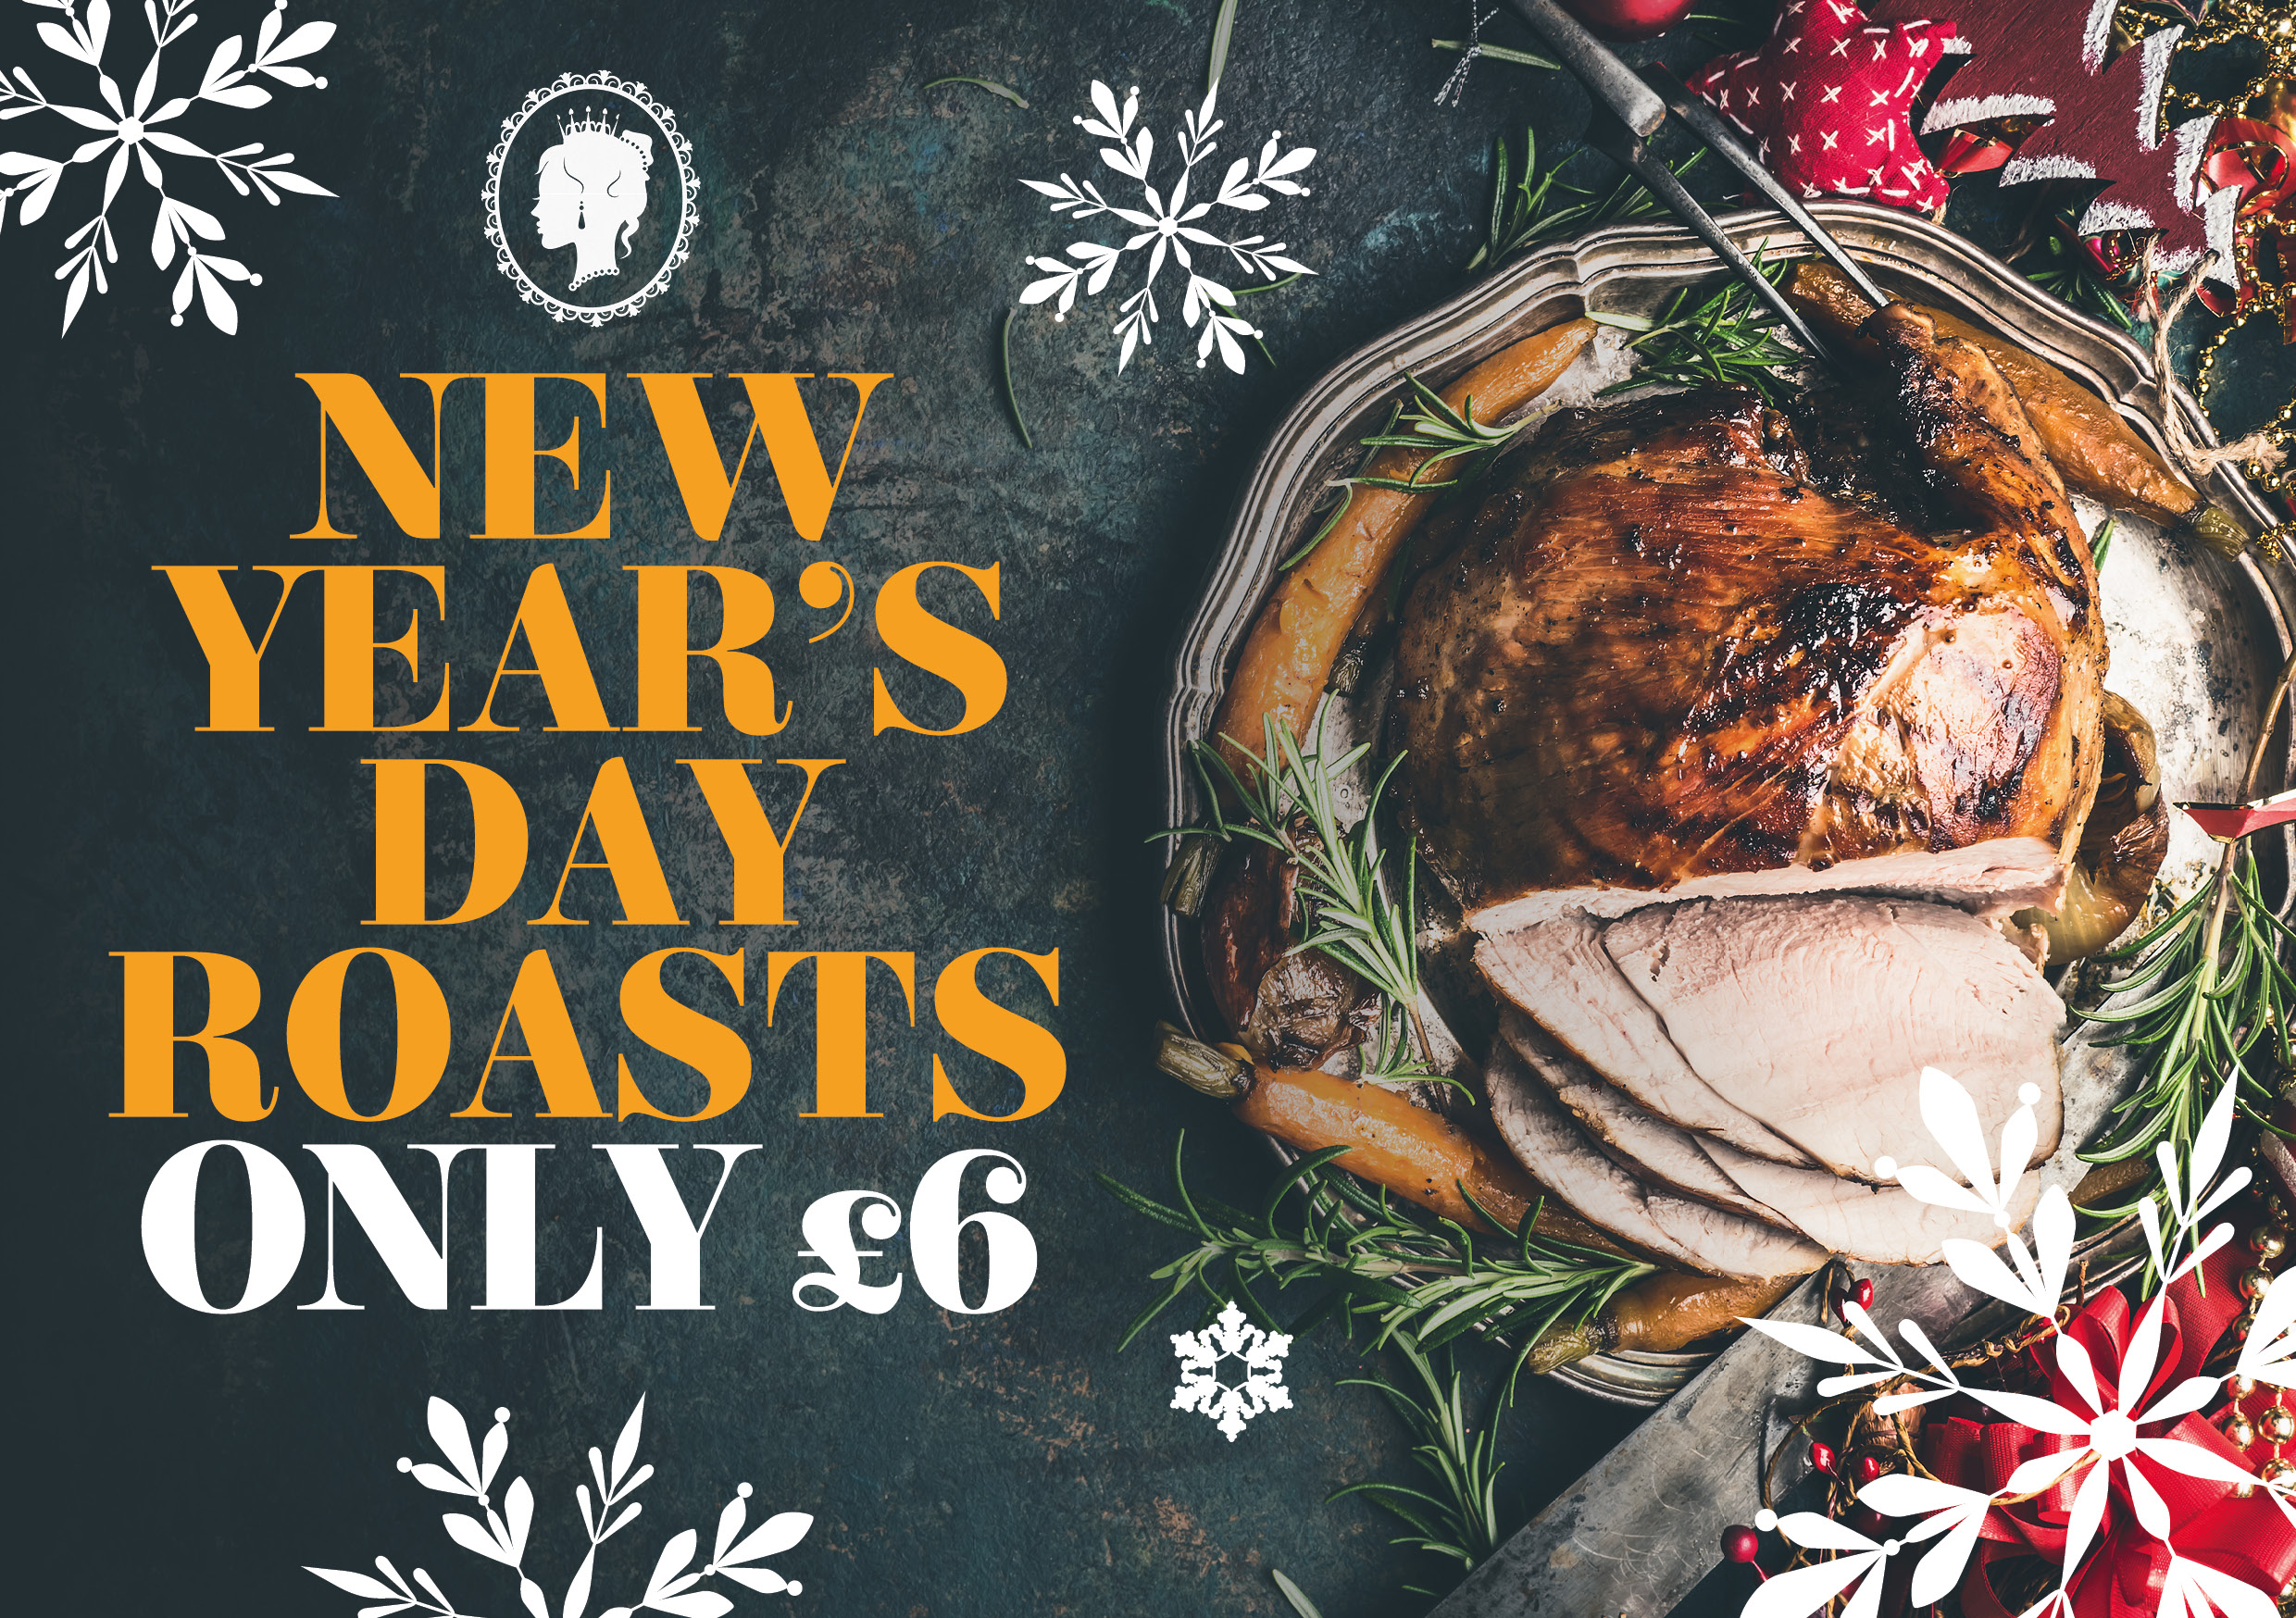 New Year's Day Roasts